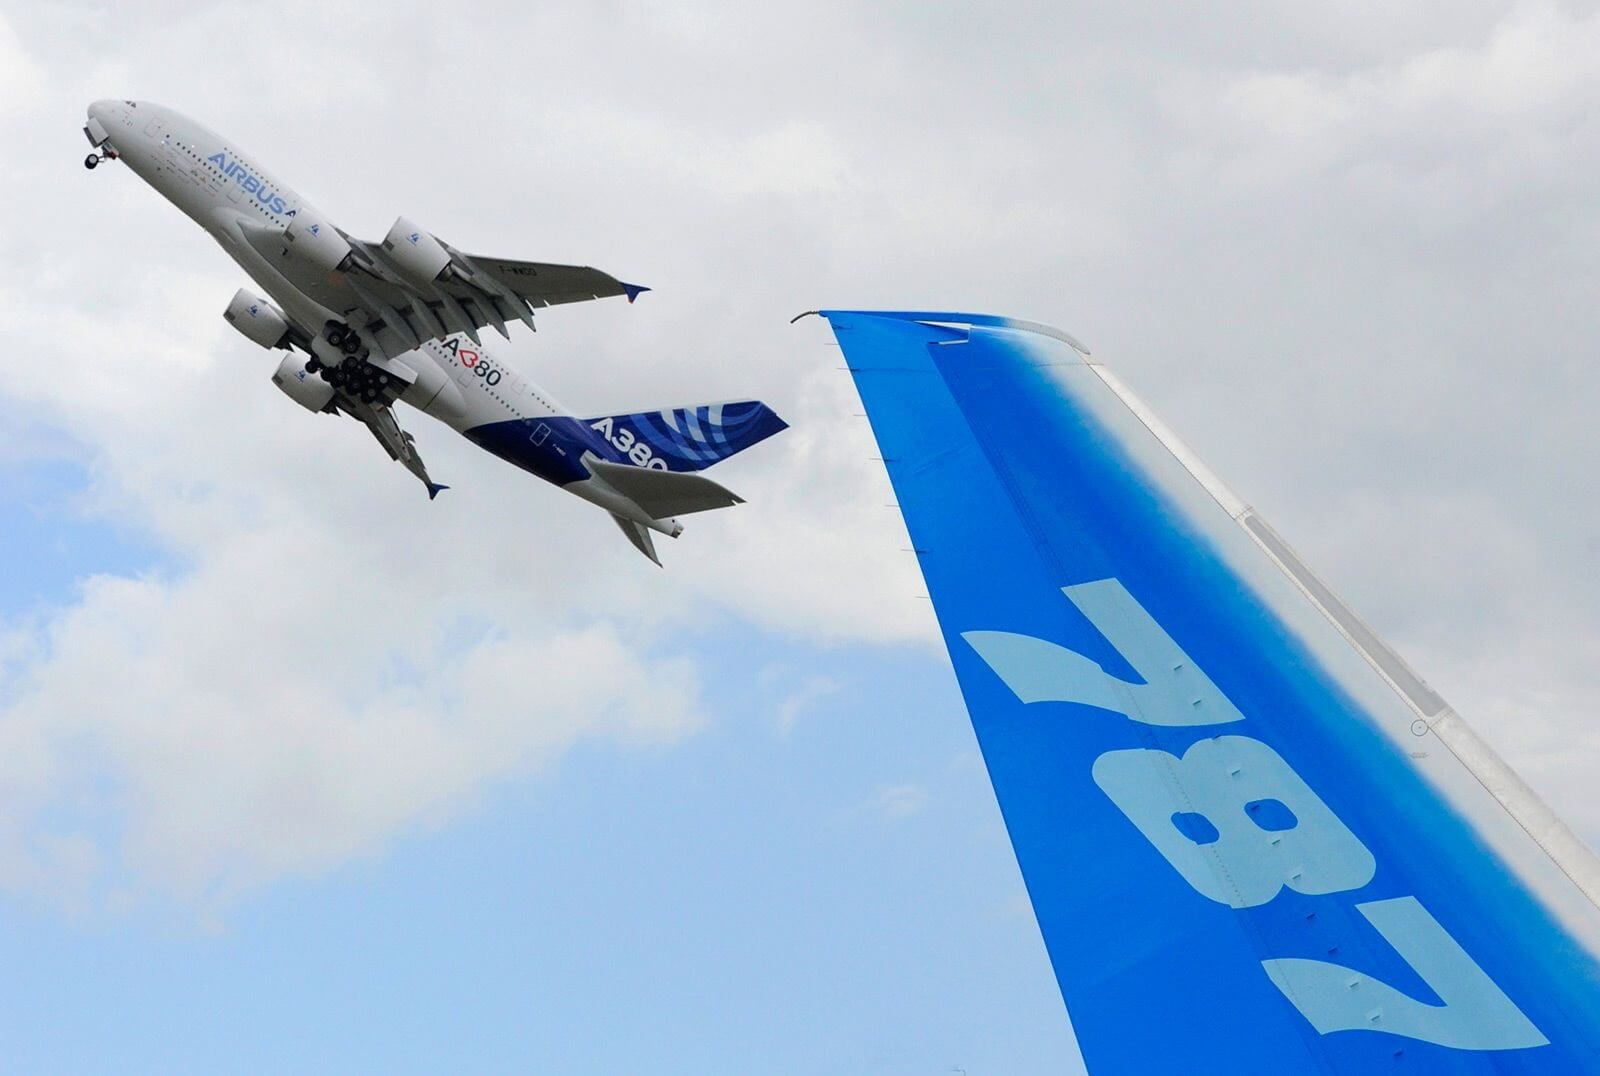 Airbus steals Le Bourget show with 595 orders vs. Boeing's 234